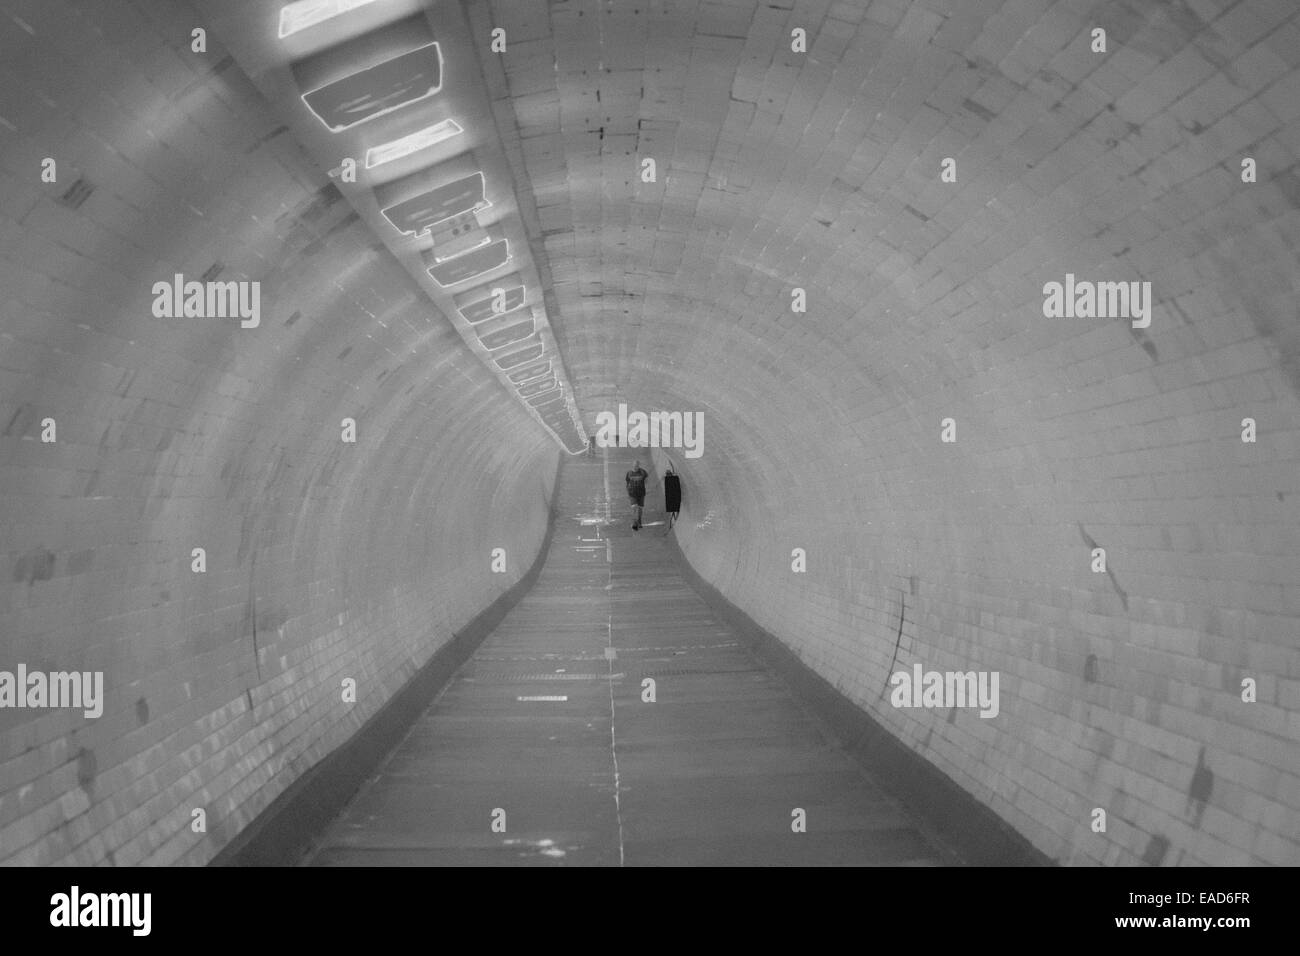 Man walking through Greenwich foot tunnel that runs under the River Thames between Greenwich and Isle of Dogs London - Stock Image